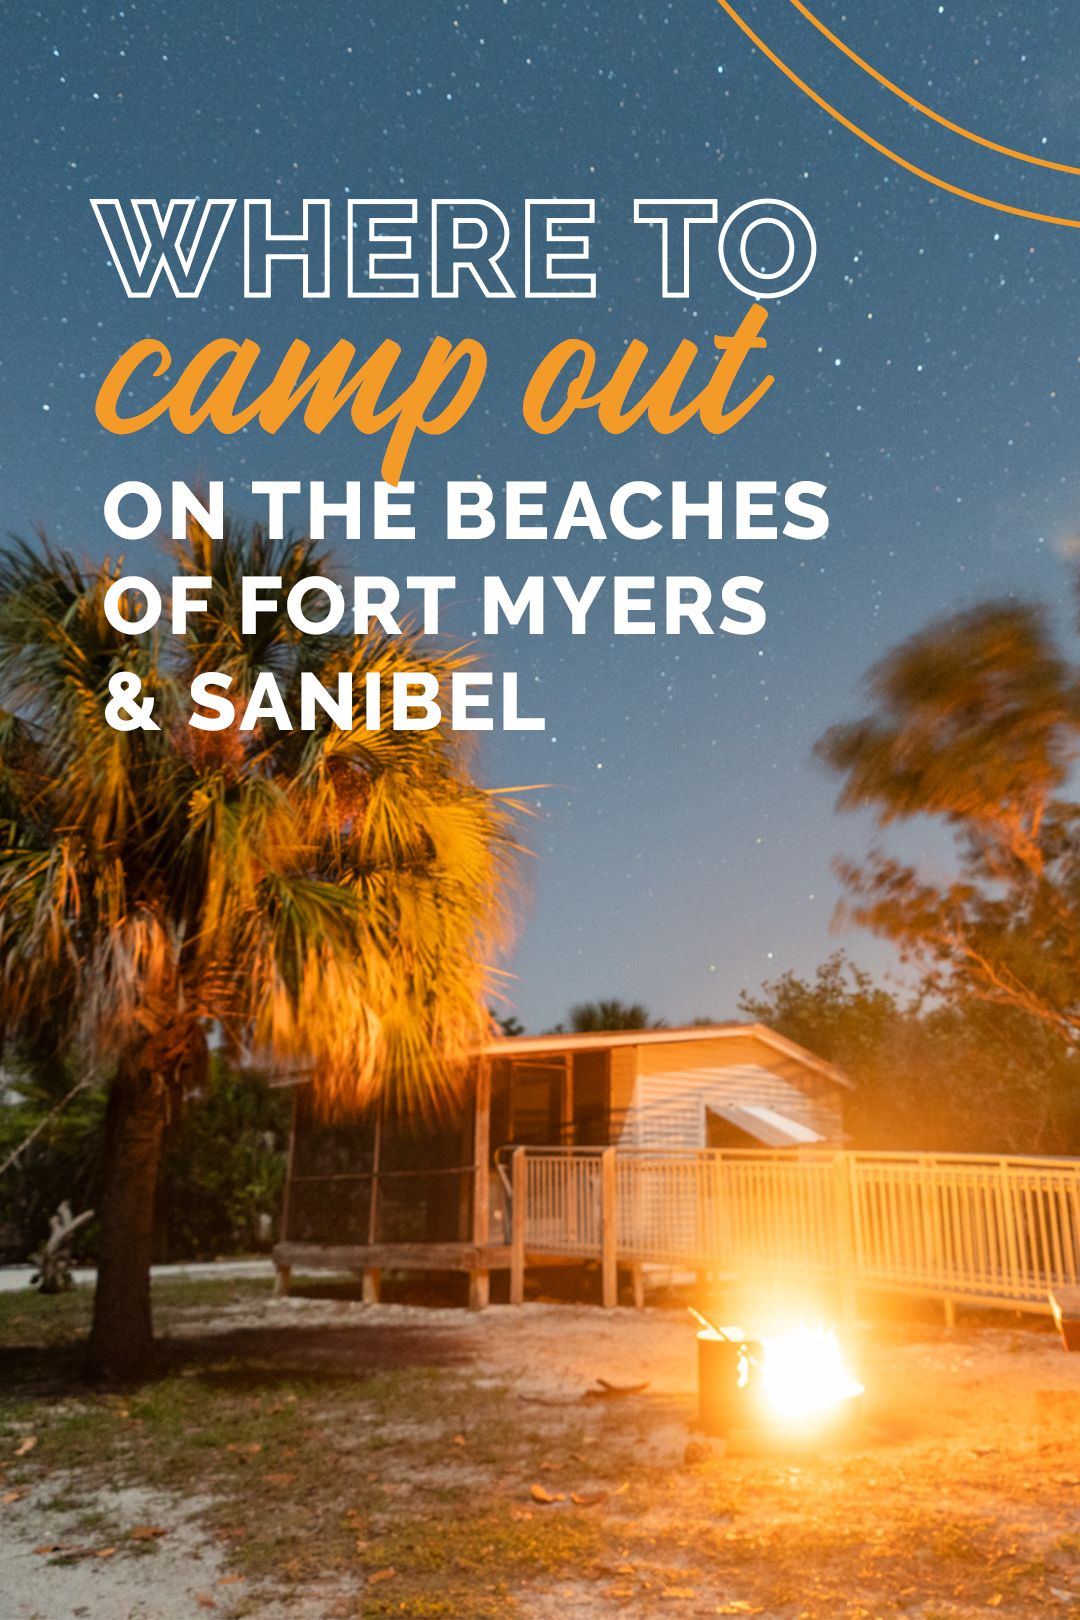 Where to Camp Out On the Beaches of Fort Myers & S